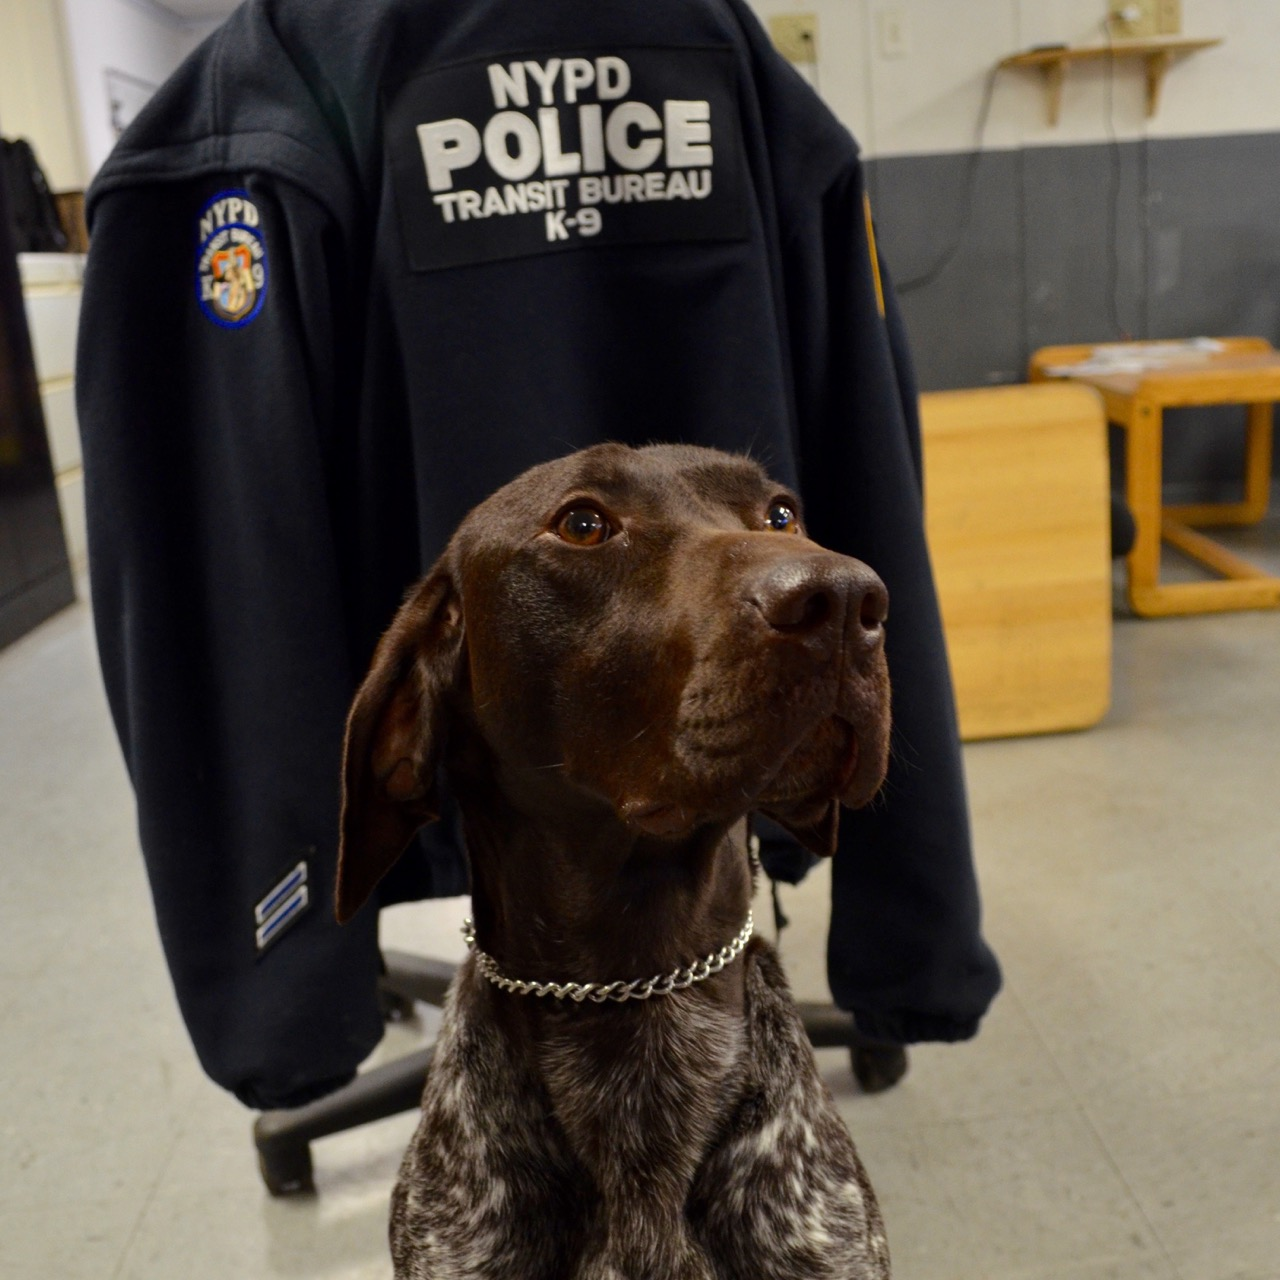 Sully. the NYPD's smallest police dog has a big job - sniffing out terrorism and saving lives.